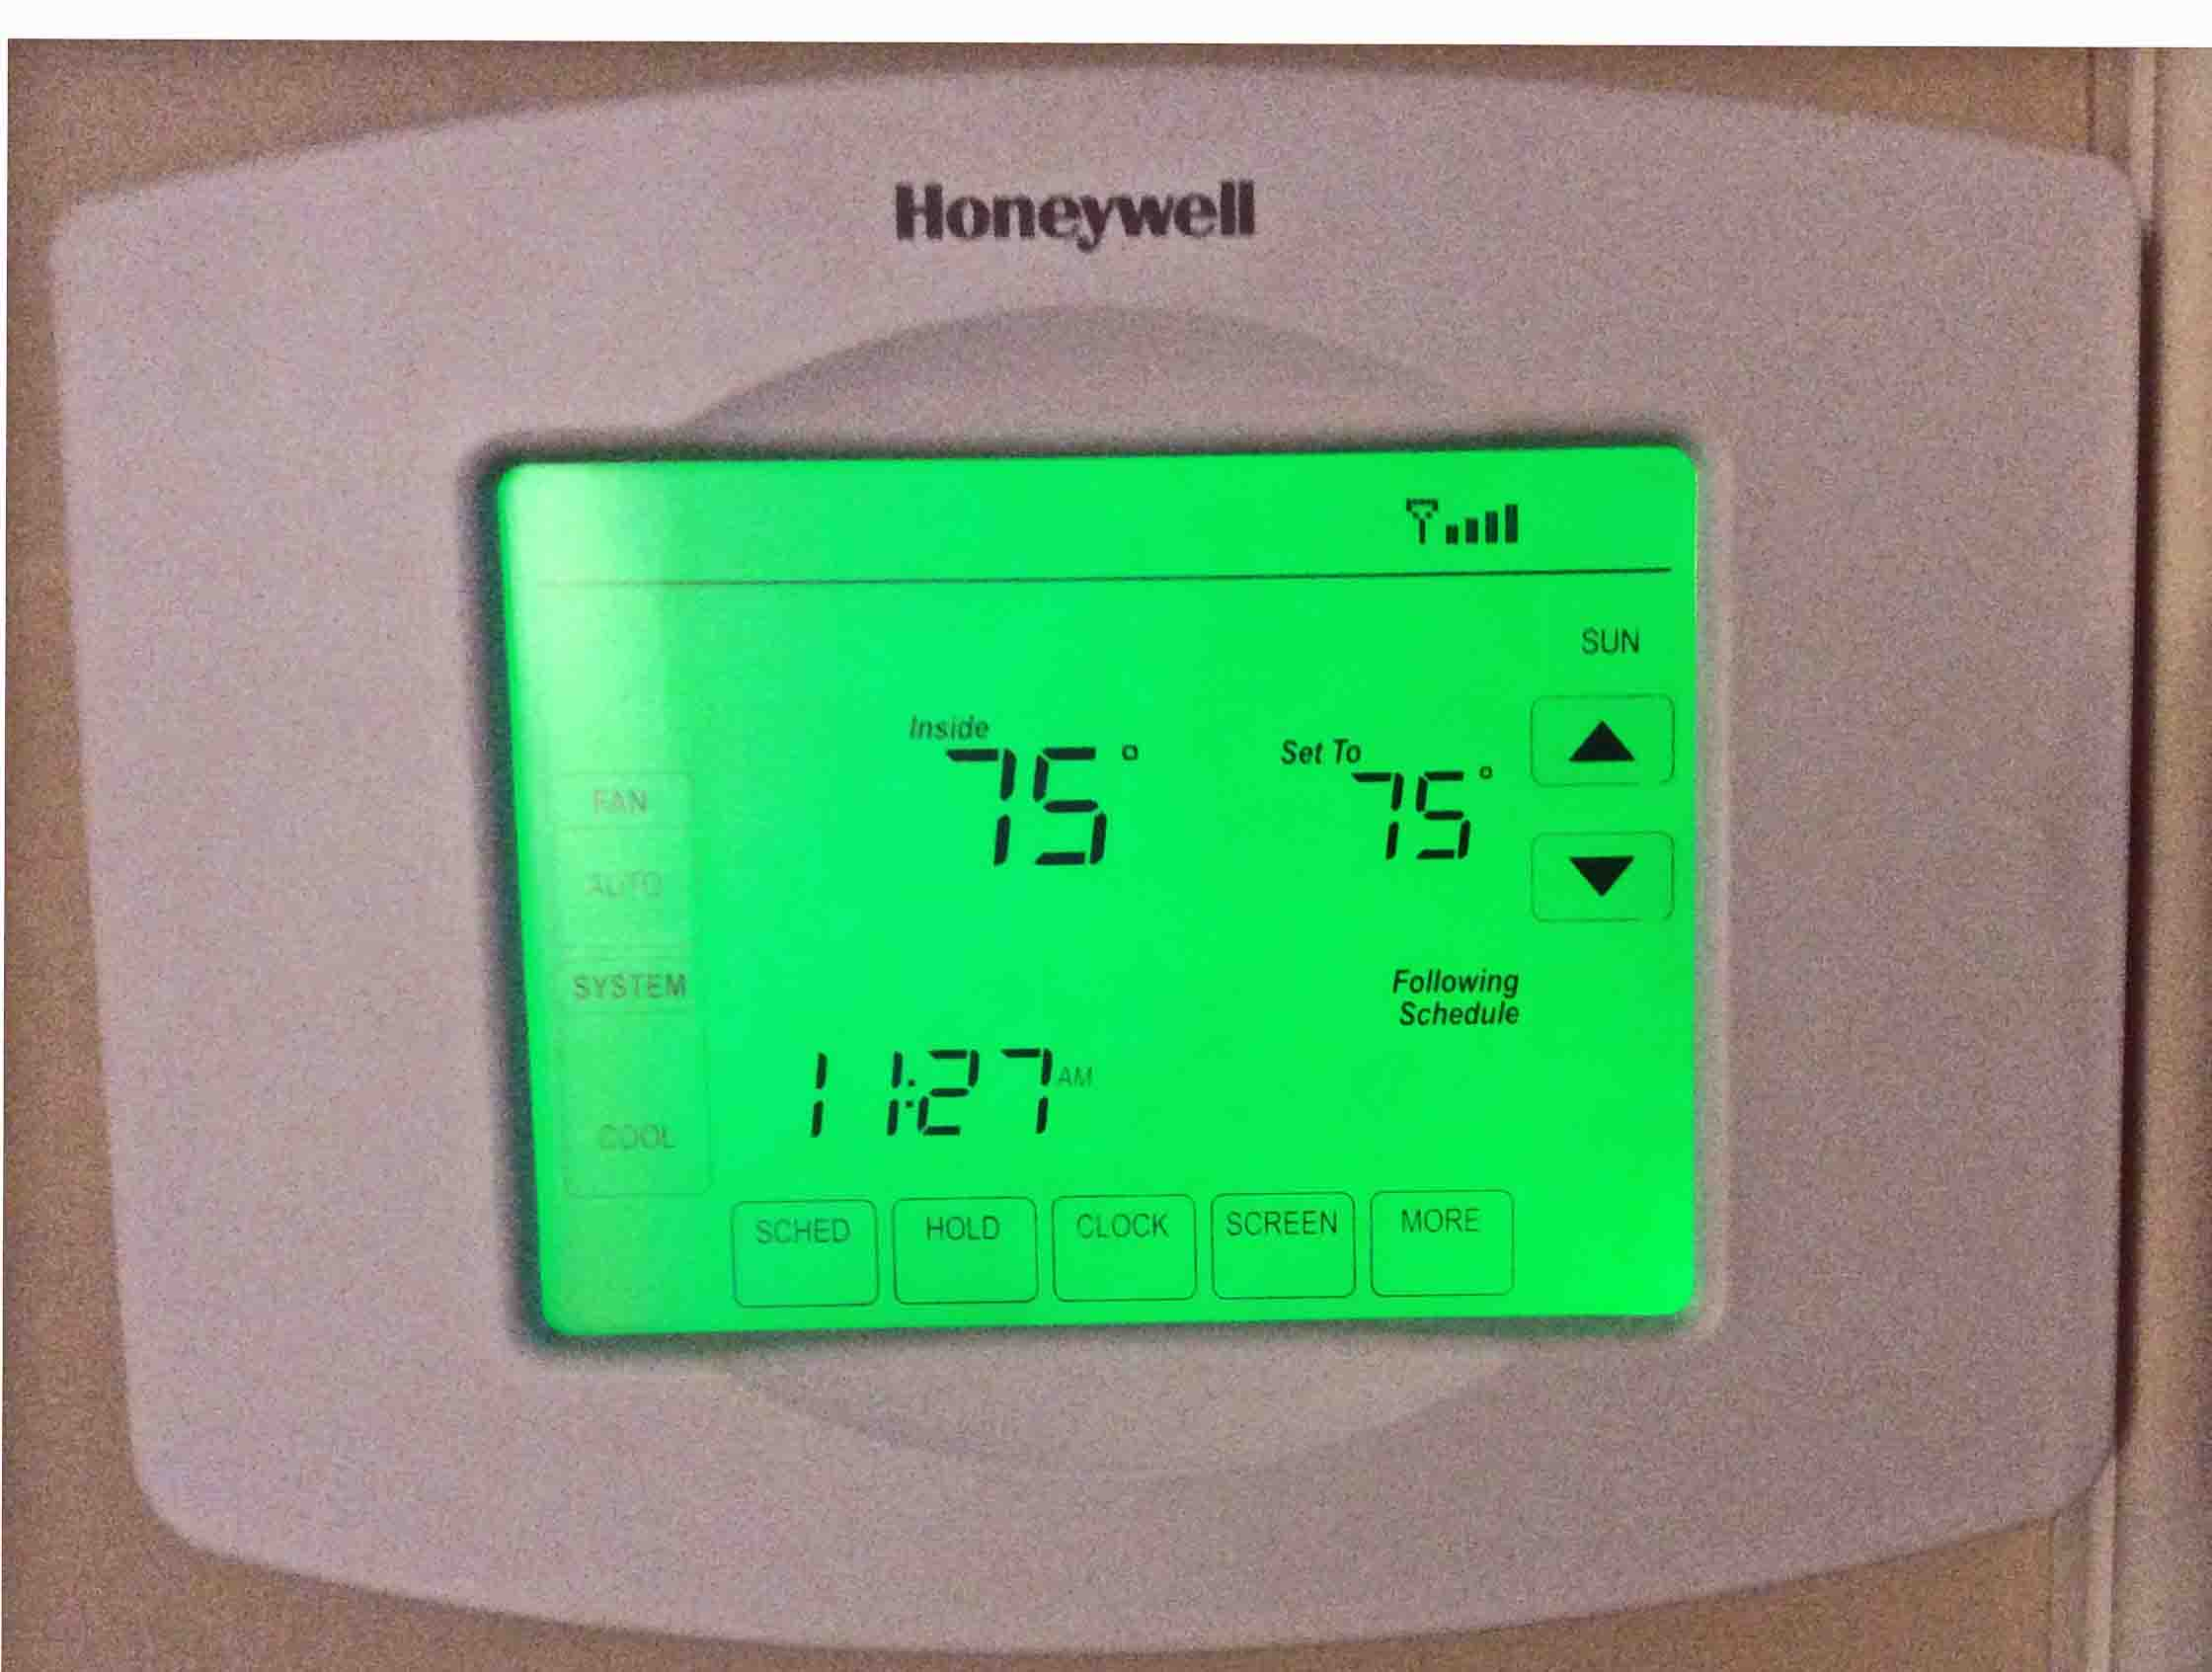 honeywell wifi wireless programmable thermostat rth8580wf review rh tomstek us noma programmable thermostat owner's manual Robertshaw Programmable Thermostat Manual